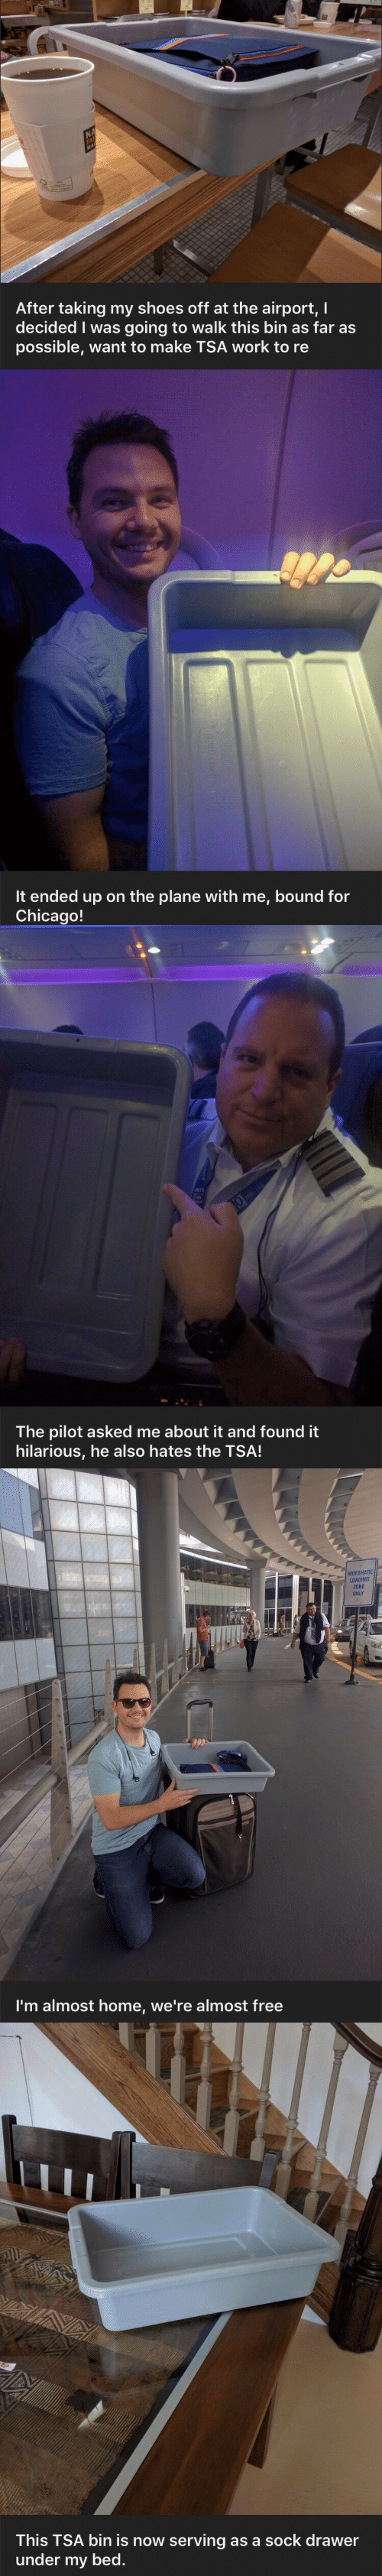 tsa: After taking my shoes off at the airport, l  decided I was going to walk this bin as far as  possible, want to make TSA work to re   It ended up on the plane with me, bound for  Chicago!   The pilot asked me about it and found it  hilarious, he also hates the TSA!   RIDESHARE  LOADING  ZONE  ONLY  I'm almost home, we're almost free   This TSA bin is now serving as a sock drawer  under my bed.